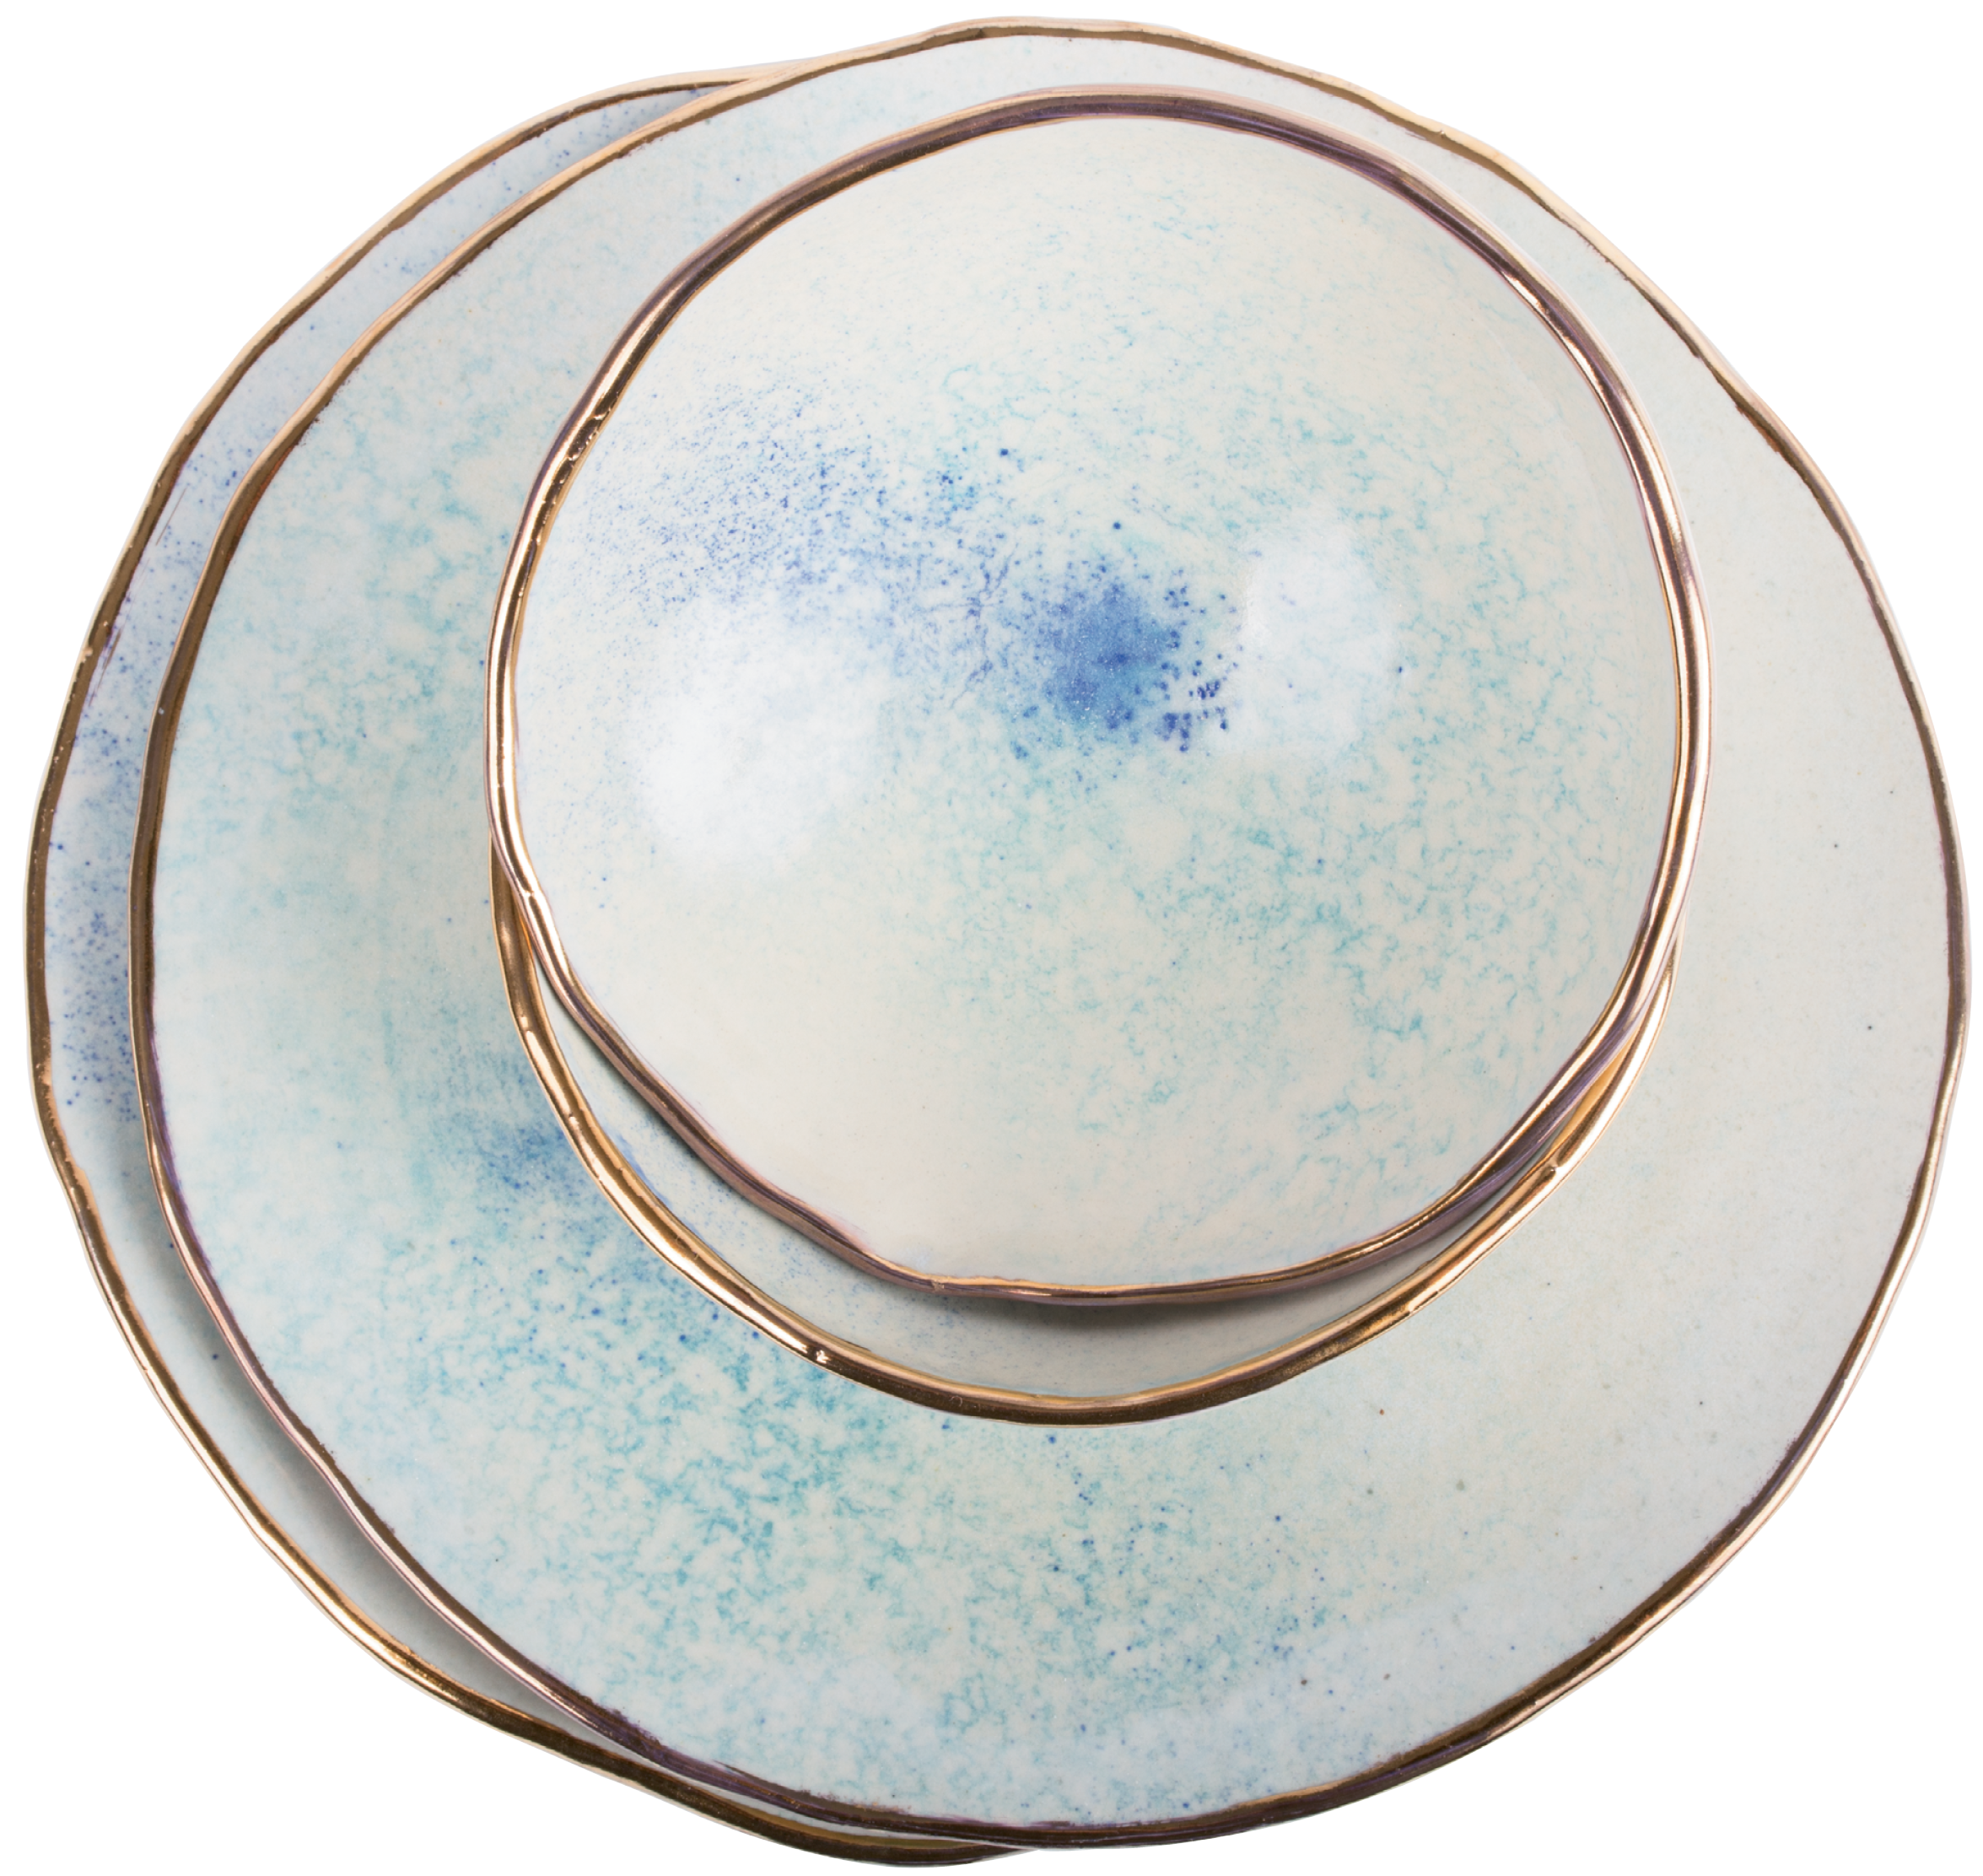 Jennings says she sees the moon in these gold-rimmed pieces from her new dinnerware line.